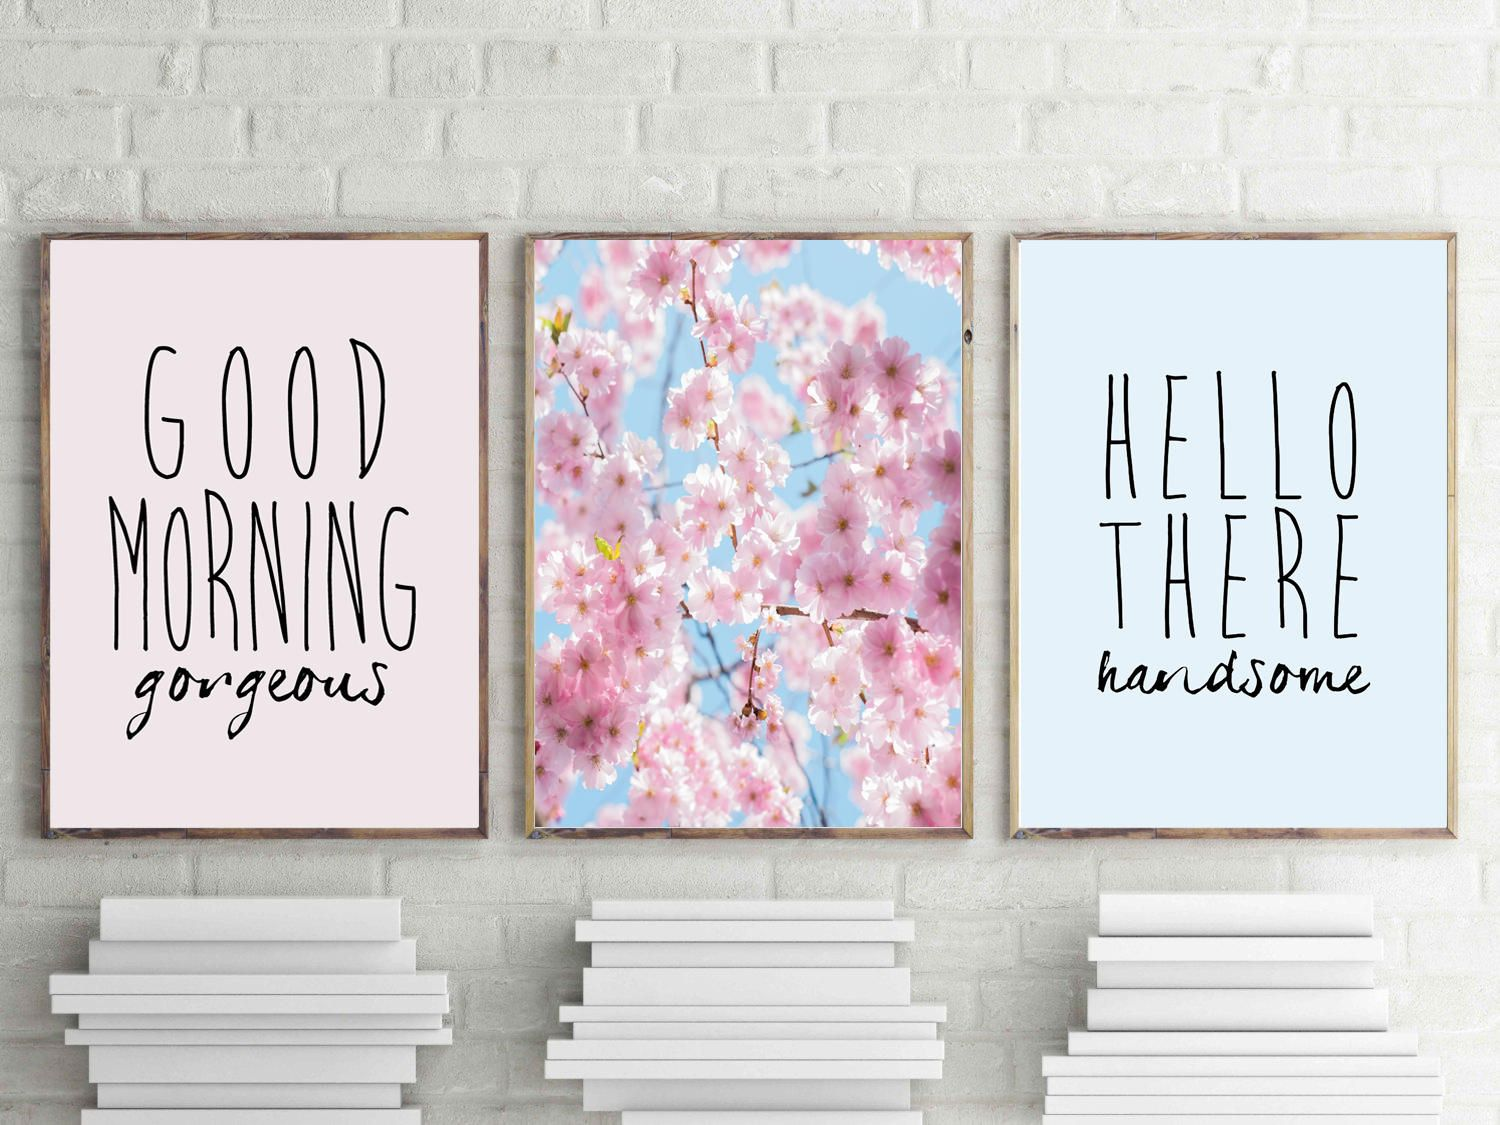 Good Morning Gorgeous Print Hello Handsome Wall Art Set Of 3 Bedroom Prints Cherry Blossom Poster S Love Bathroom Decor Kitchen